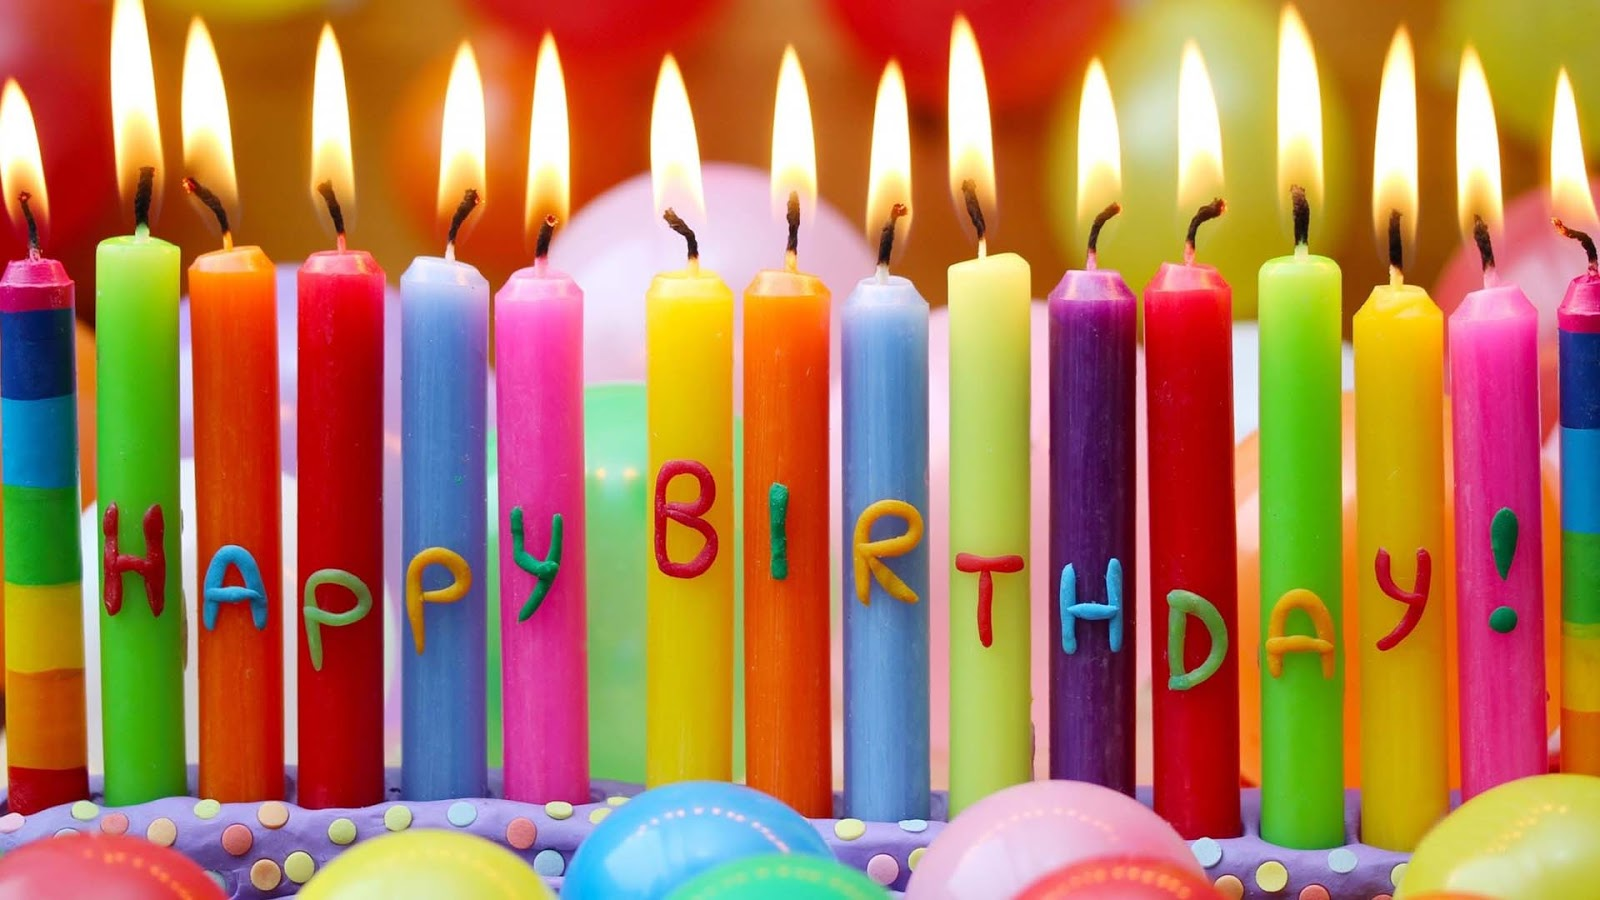 happy birth day candles wallpapers hd